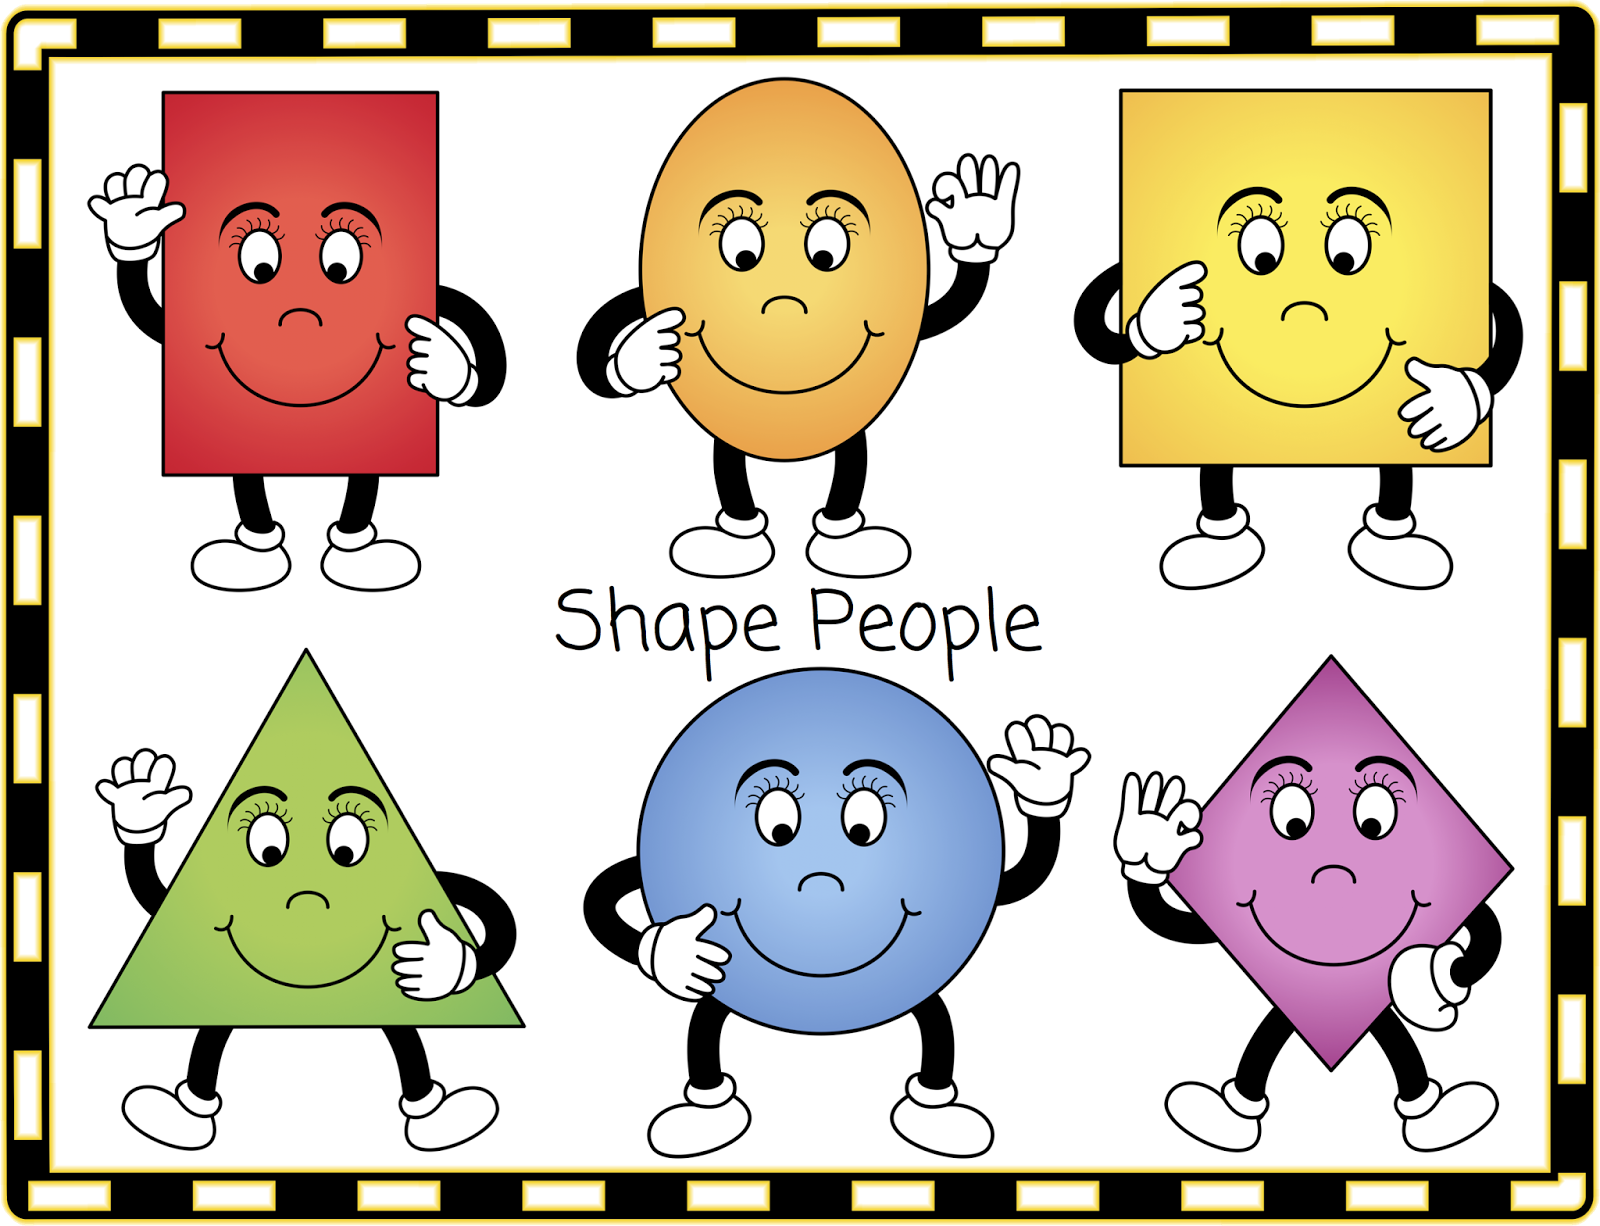 Free 2d Shape People For Your Classroom Displays Or Learning Activities Classroom Treasures